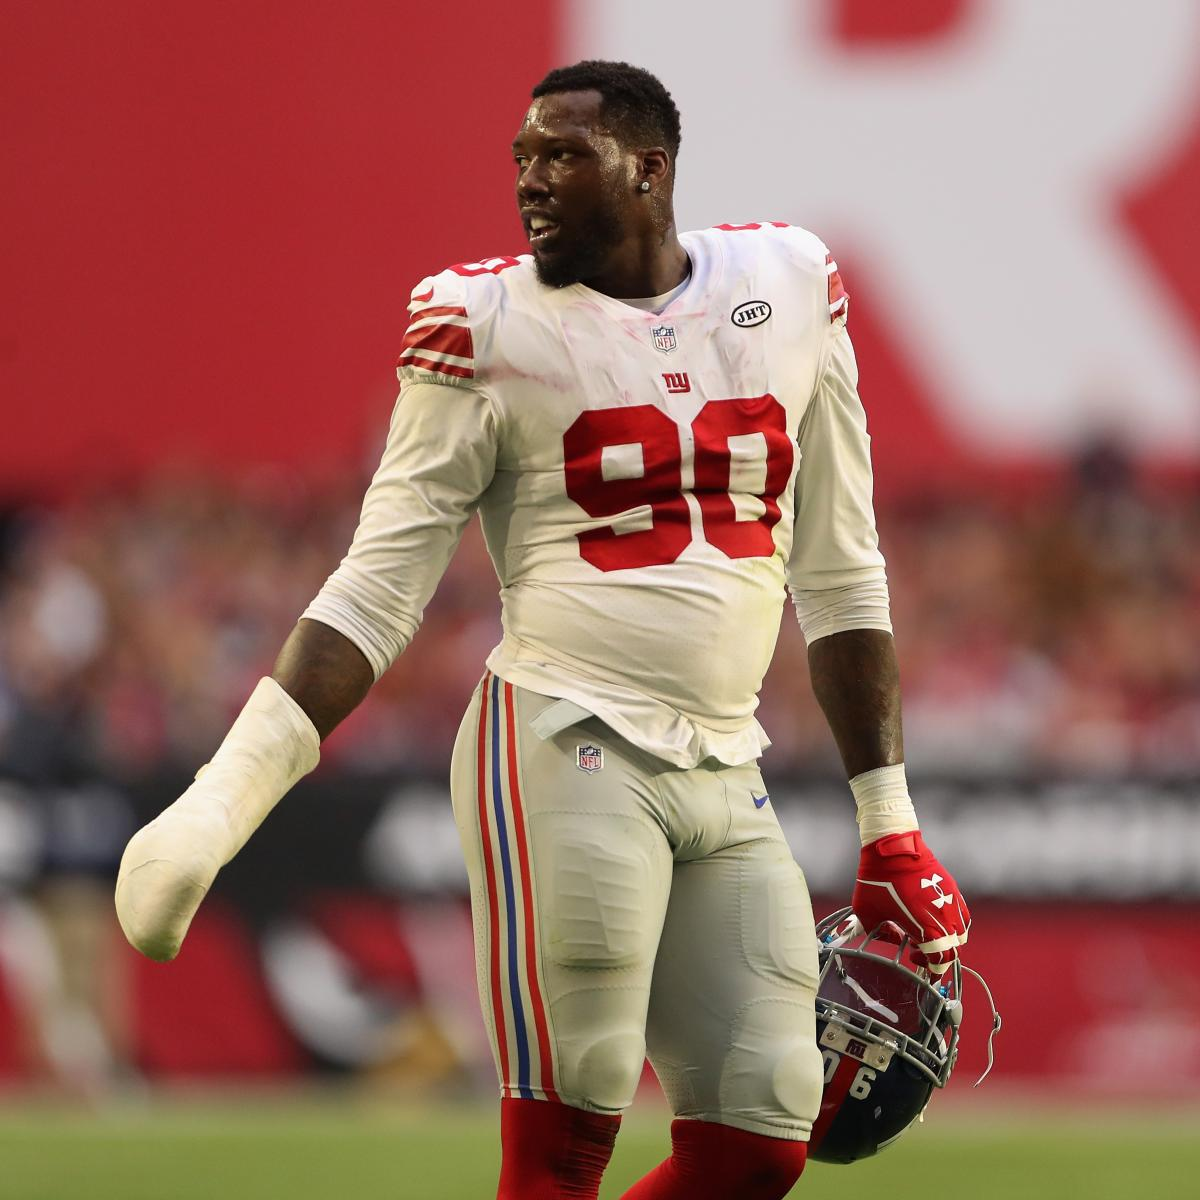 Jason Pierre-Paul Reportedly 'Surprised' By Giants Trading